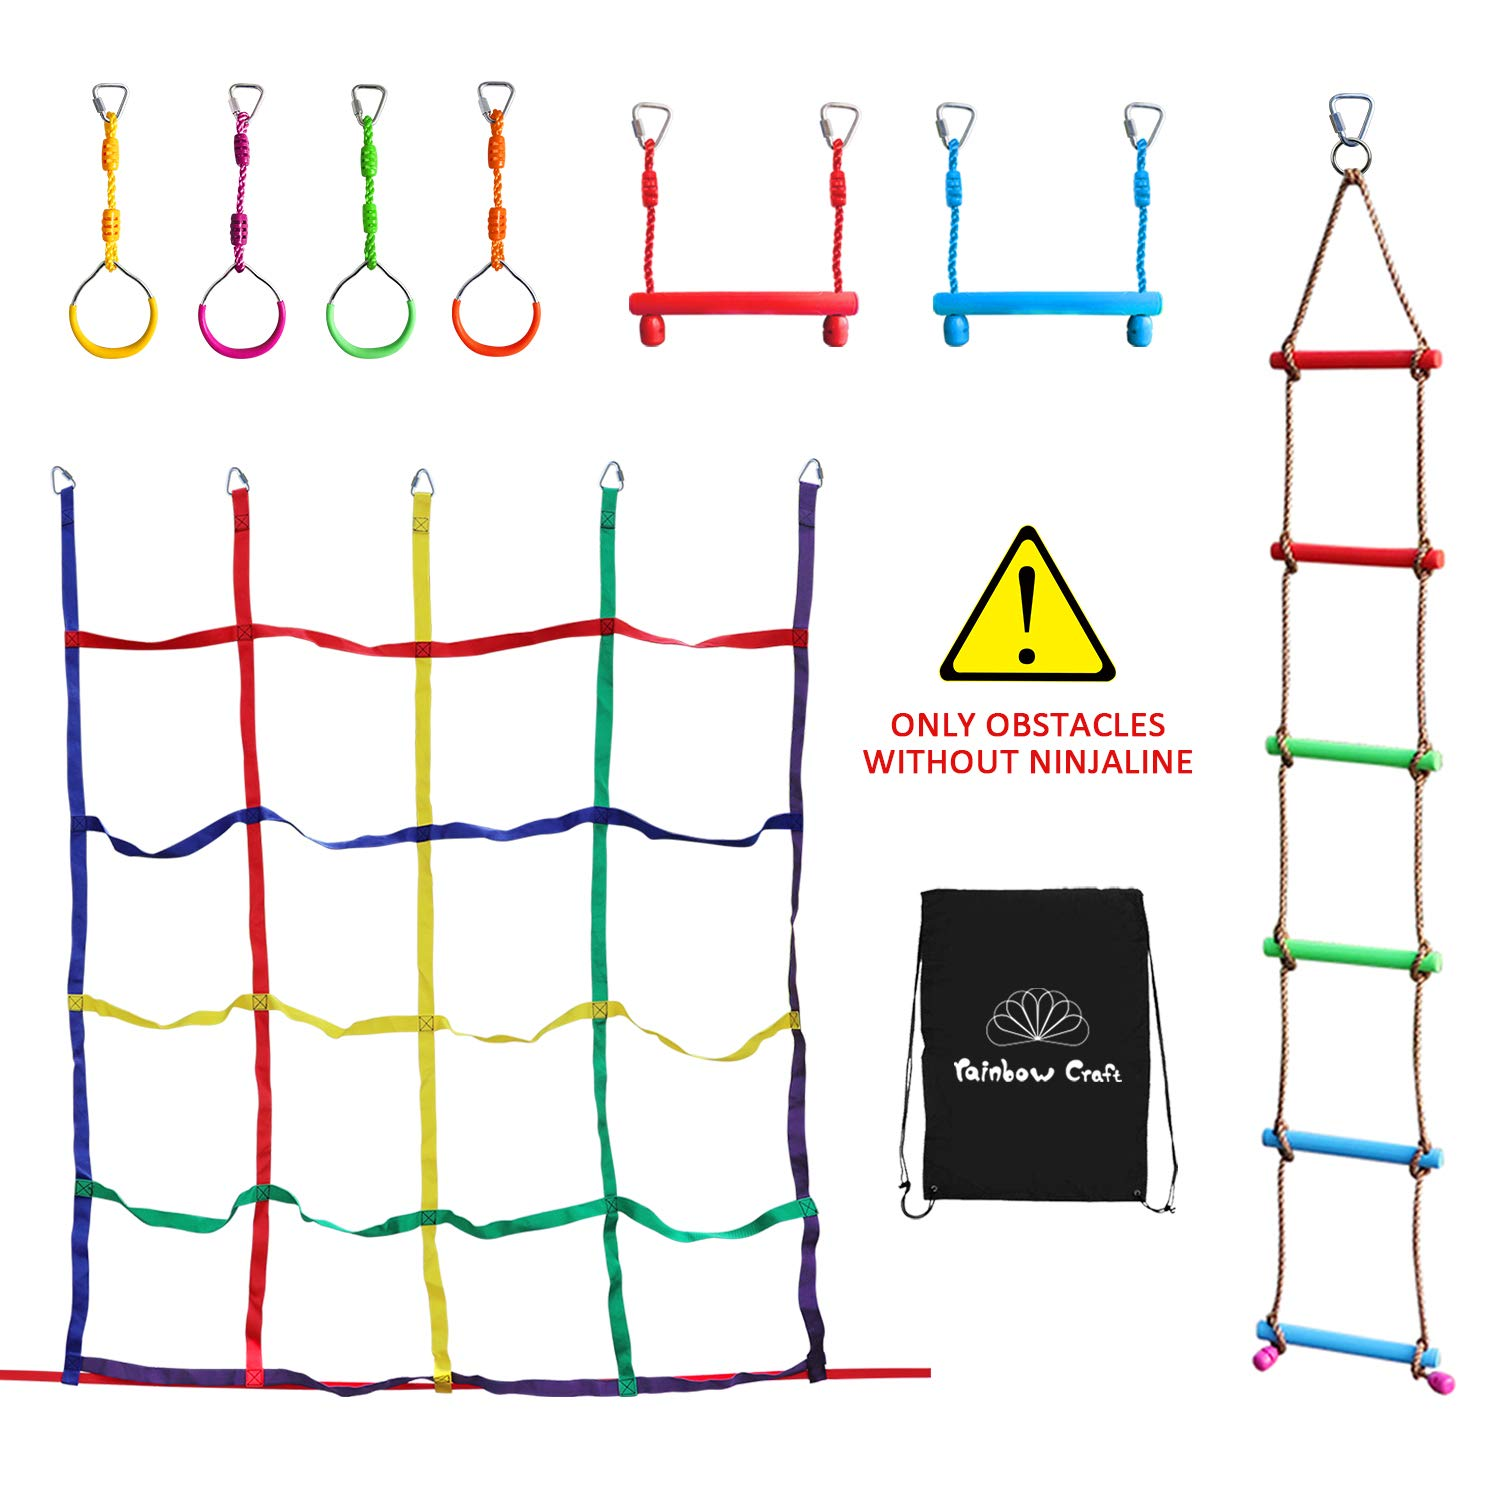 Rainbow Craft Ninja Climbing Attachments for Ninja Obstacle Course - Outdoor Kids Play, 4pc Ninja Rings, 2pc Ninja Trapeze Bars, Climbing Ladder and ...